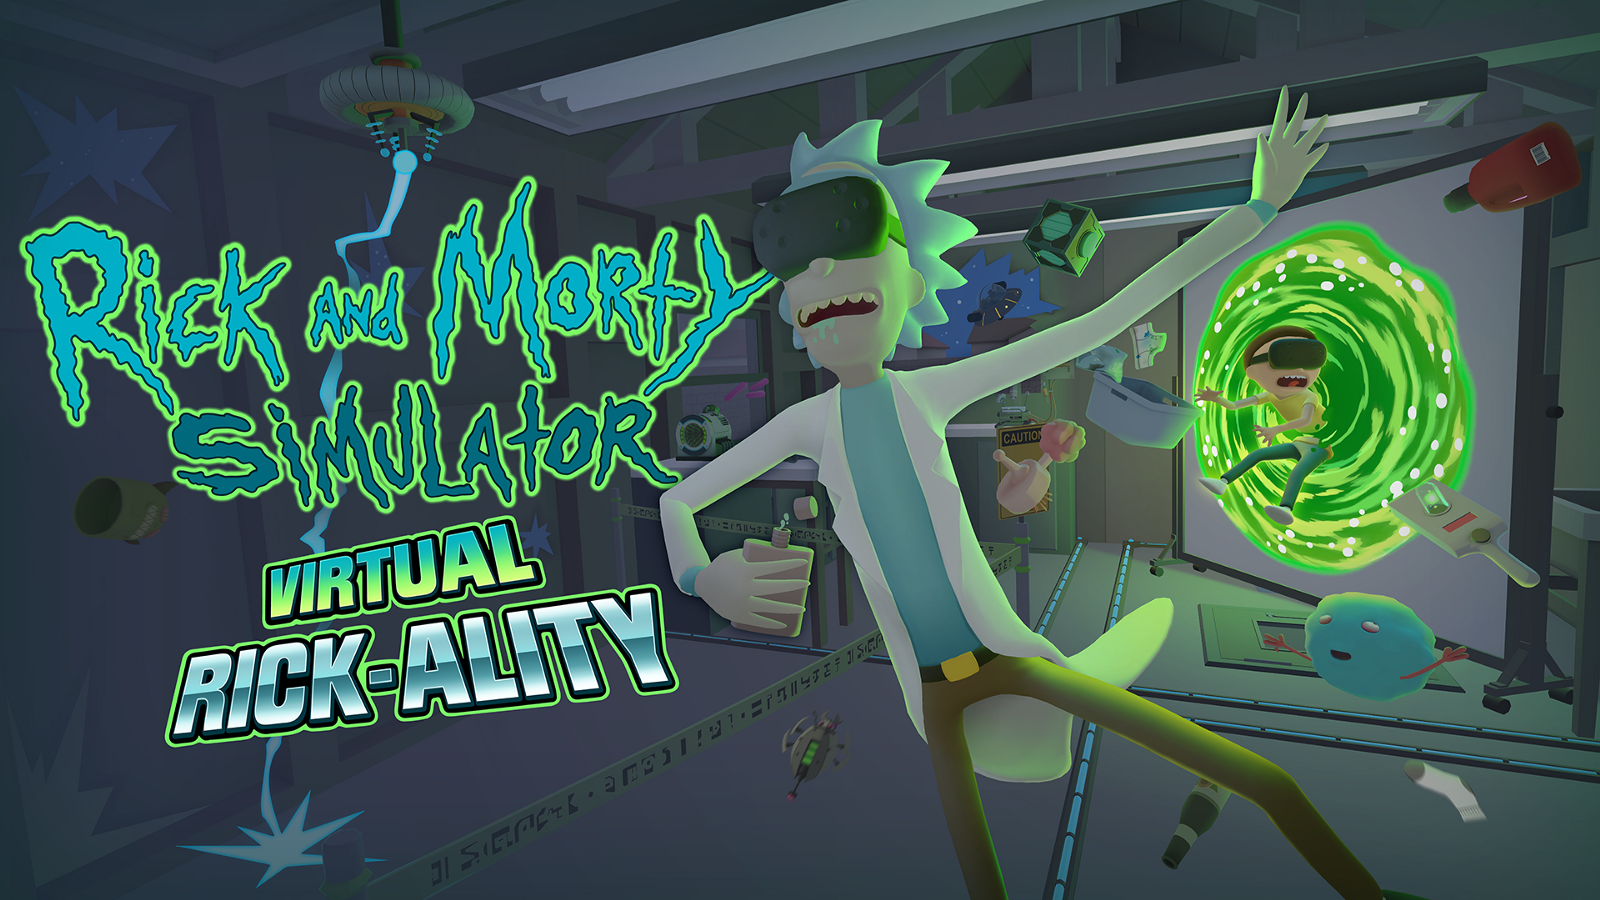 Rick And Morty VR Game Will Release On 4 20